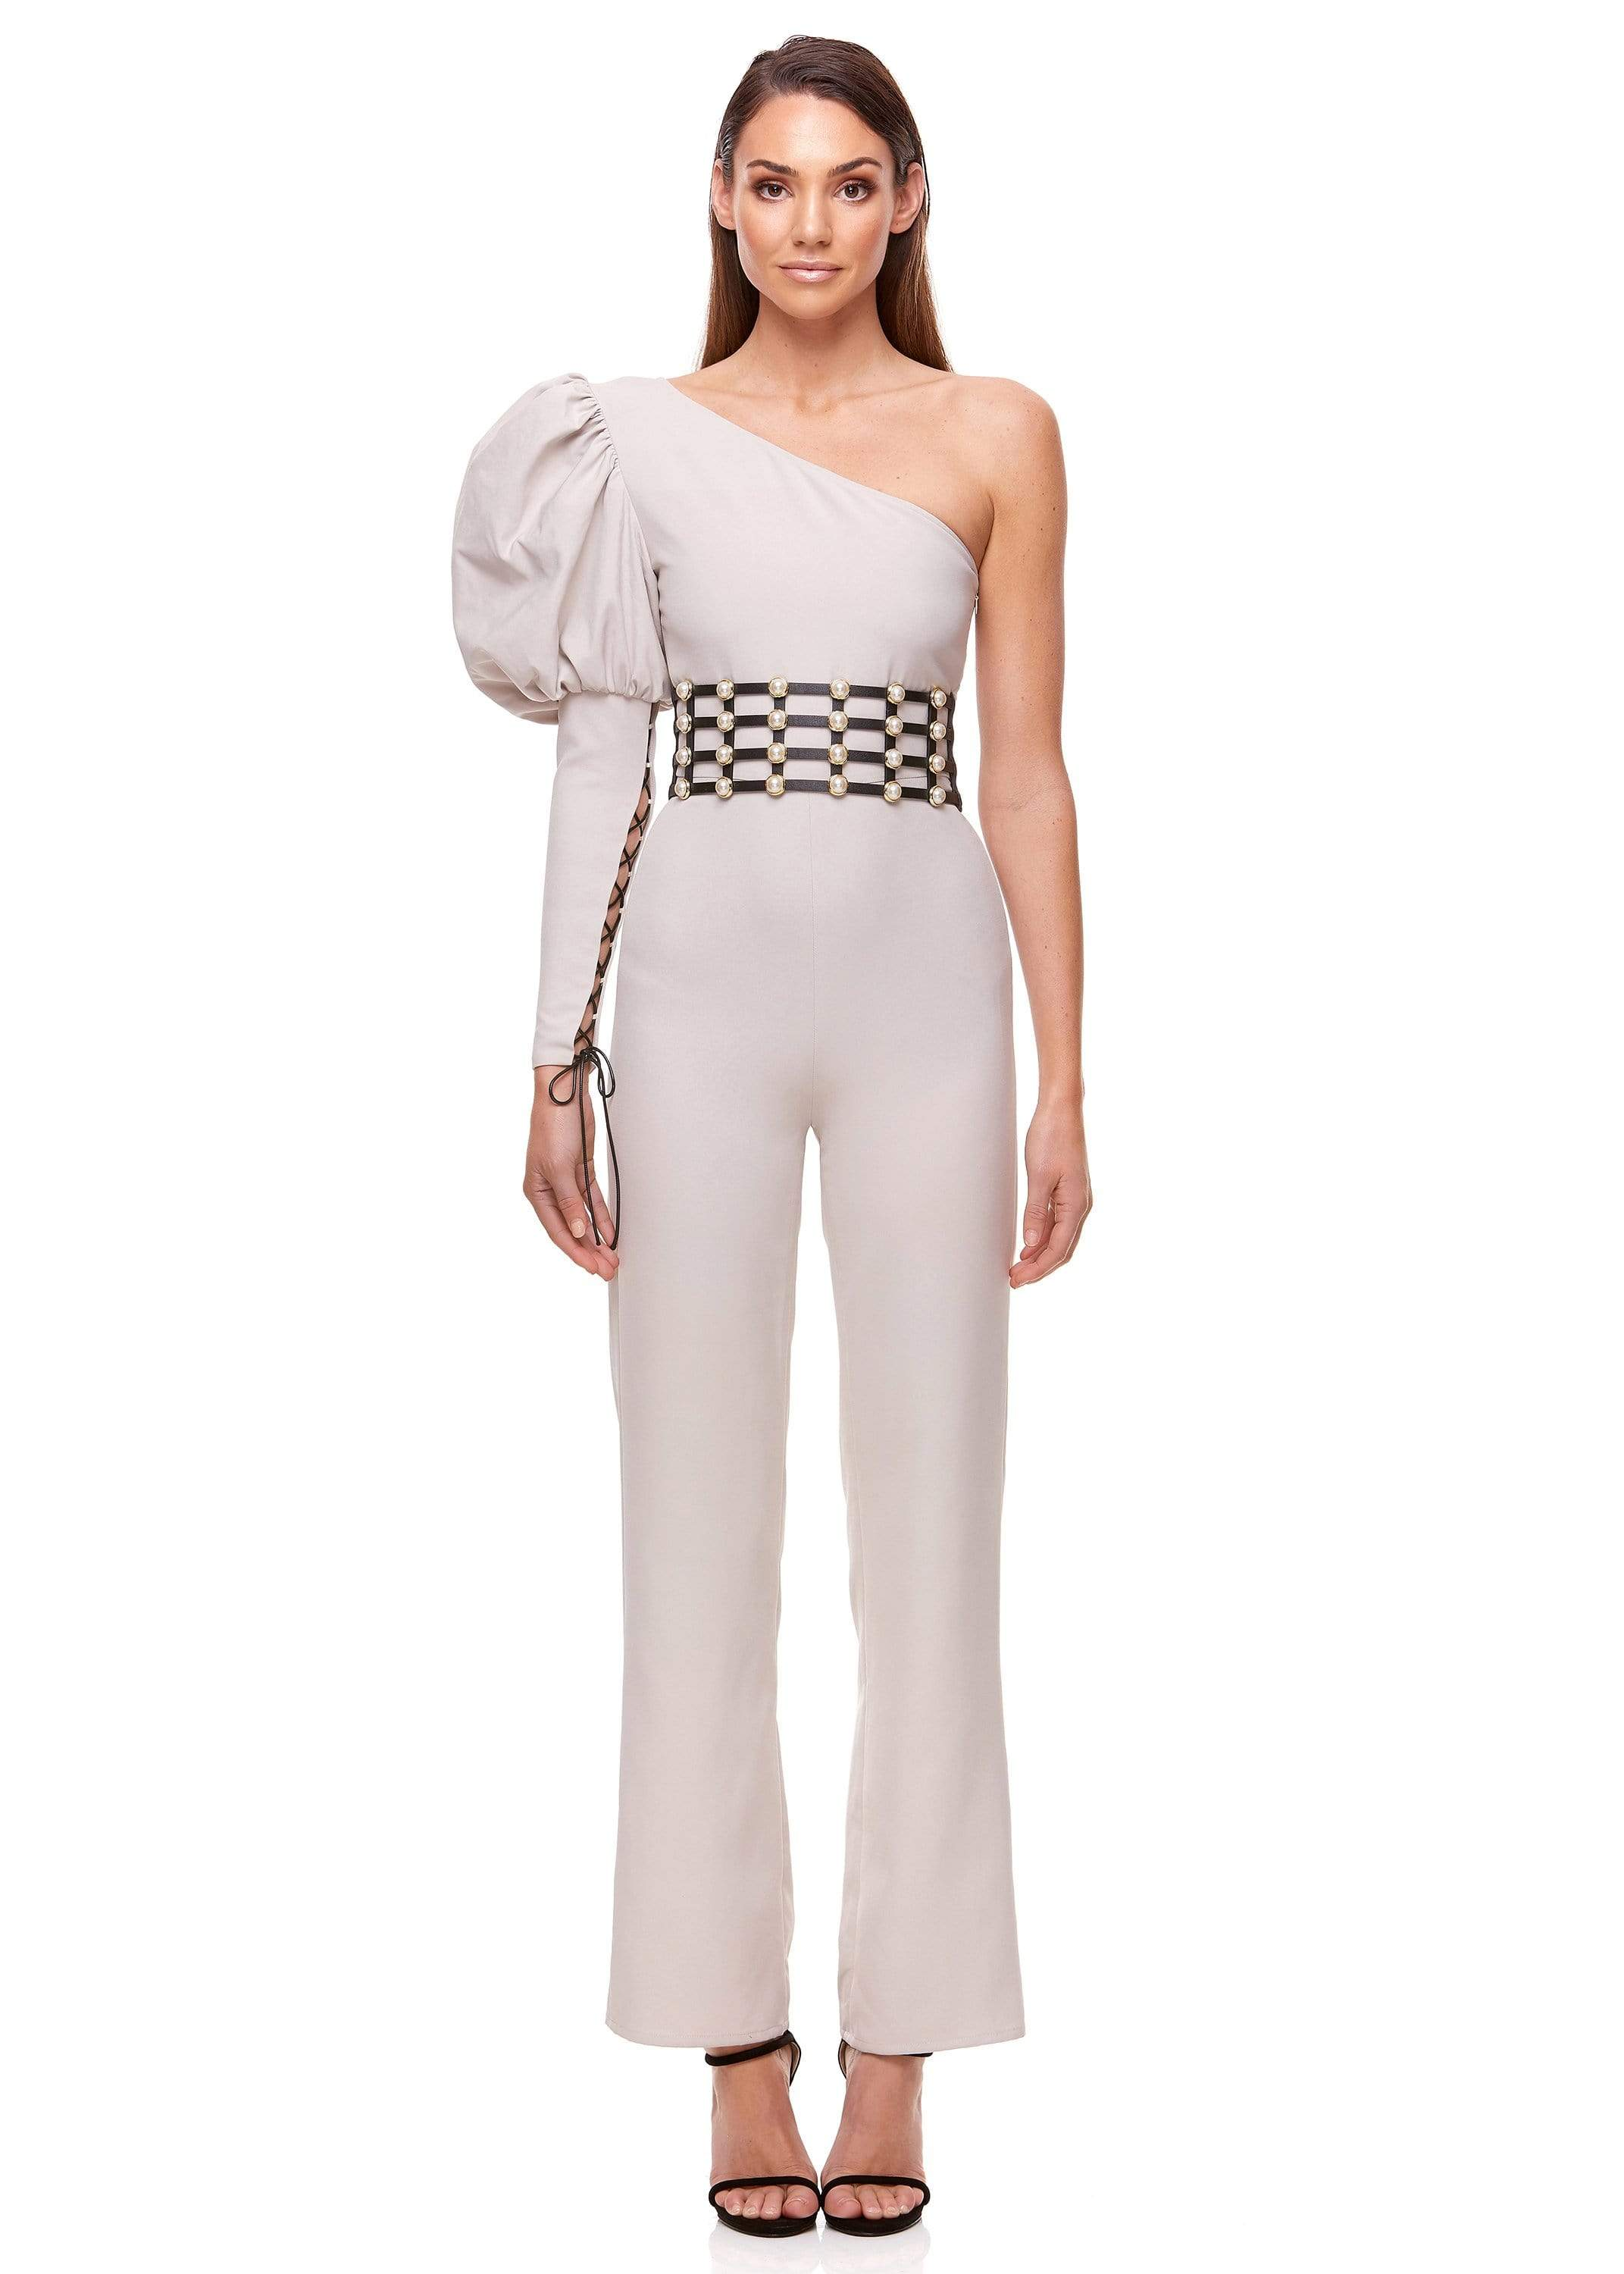 VIVIENNE PANTSUIT | NUDE - ELIYA THE LABEL